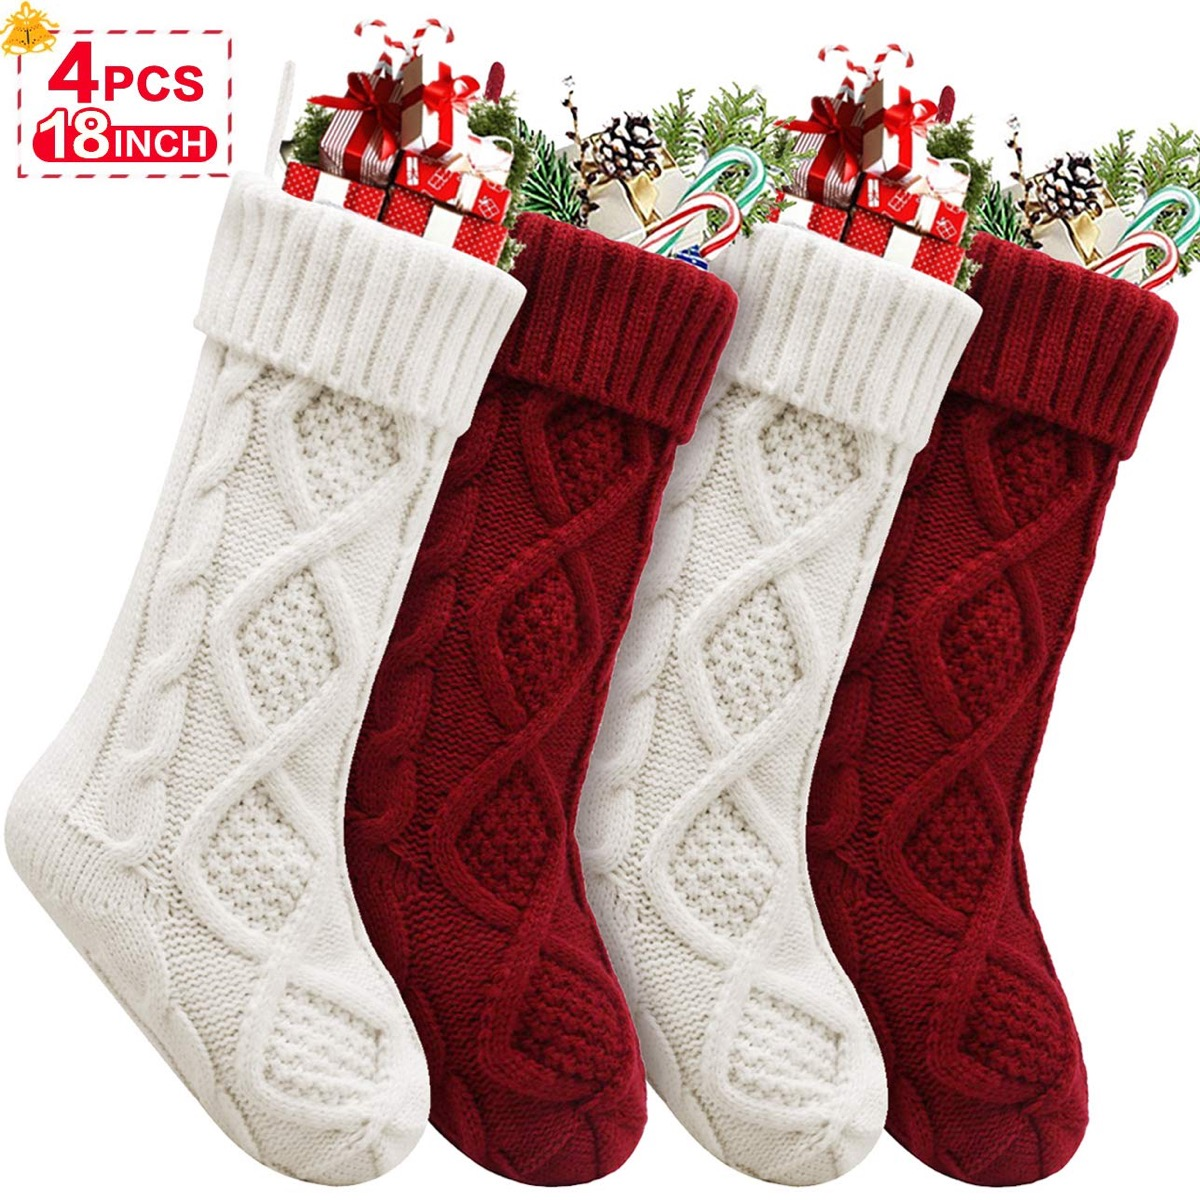 red and white cable knit stockings